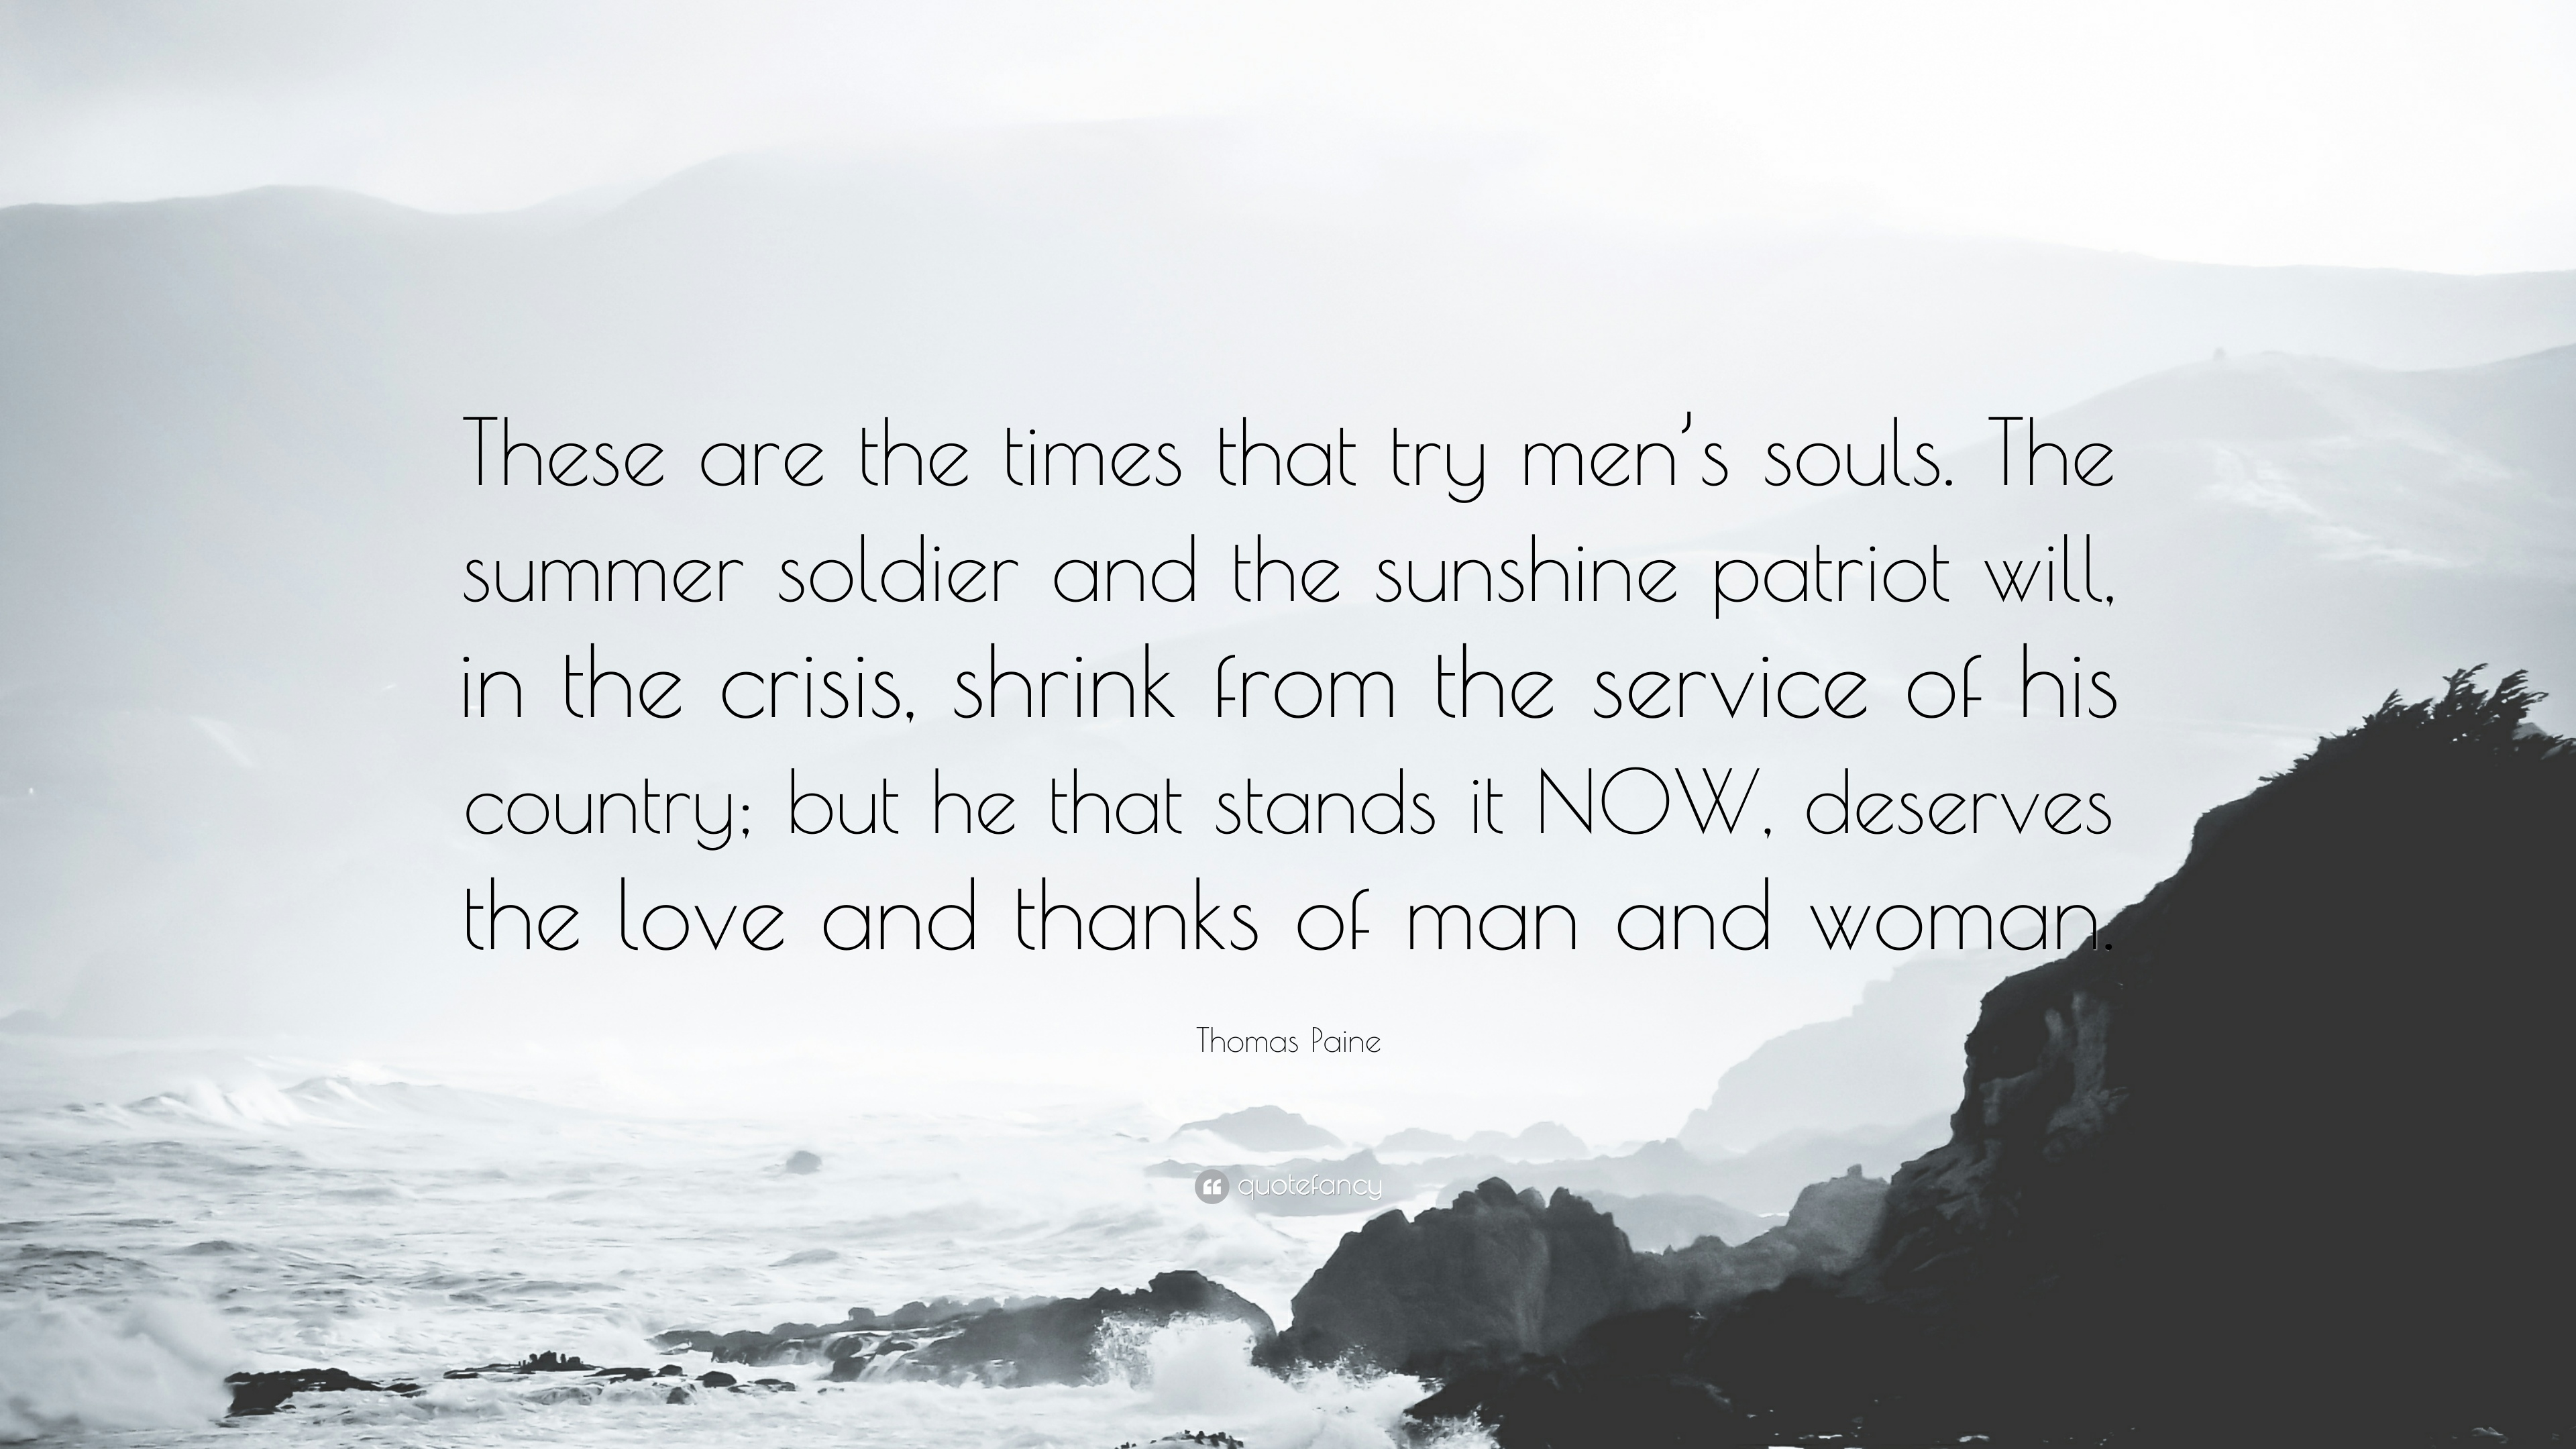 https://quotefancy.com/media/wallpaper/3840x2160/61858-Thomas-Paine-Quote-These-are-the-times-that-try-men-s-souls-The.jpg